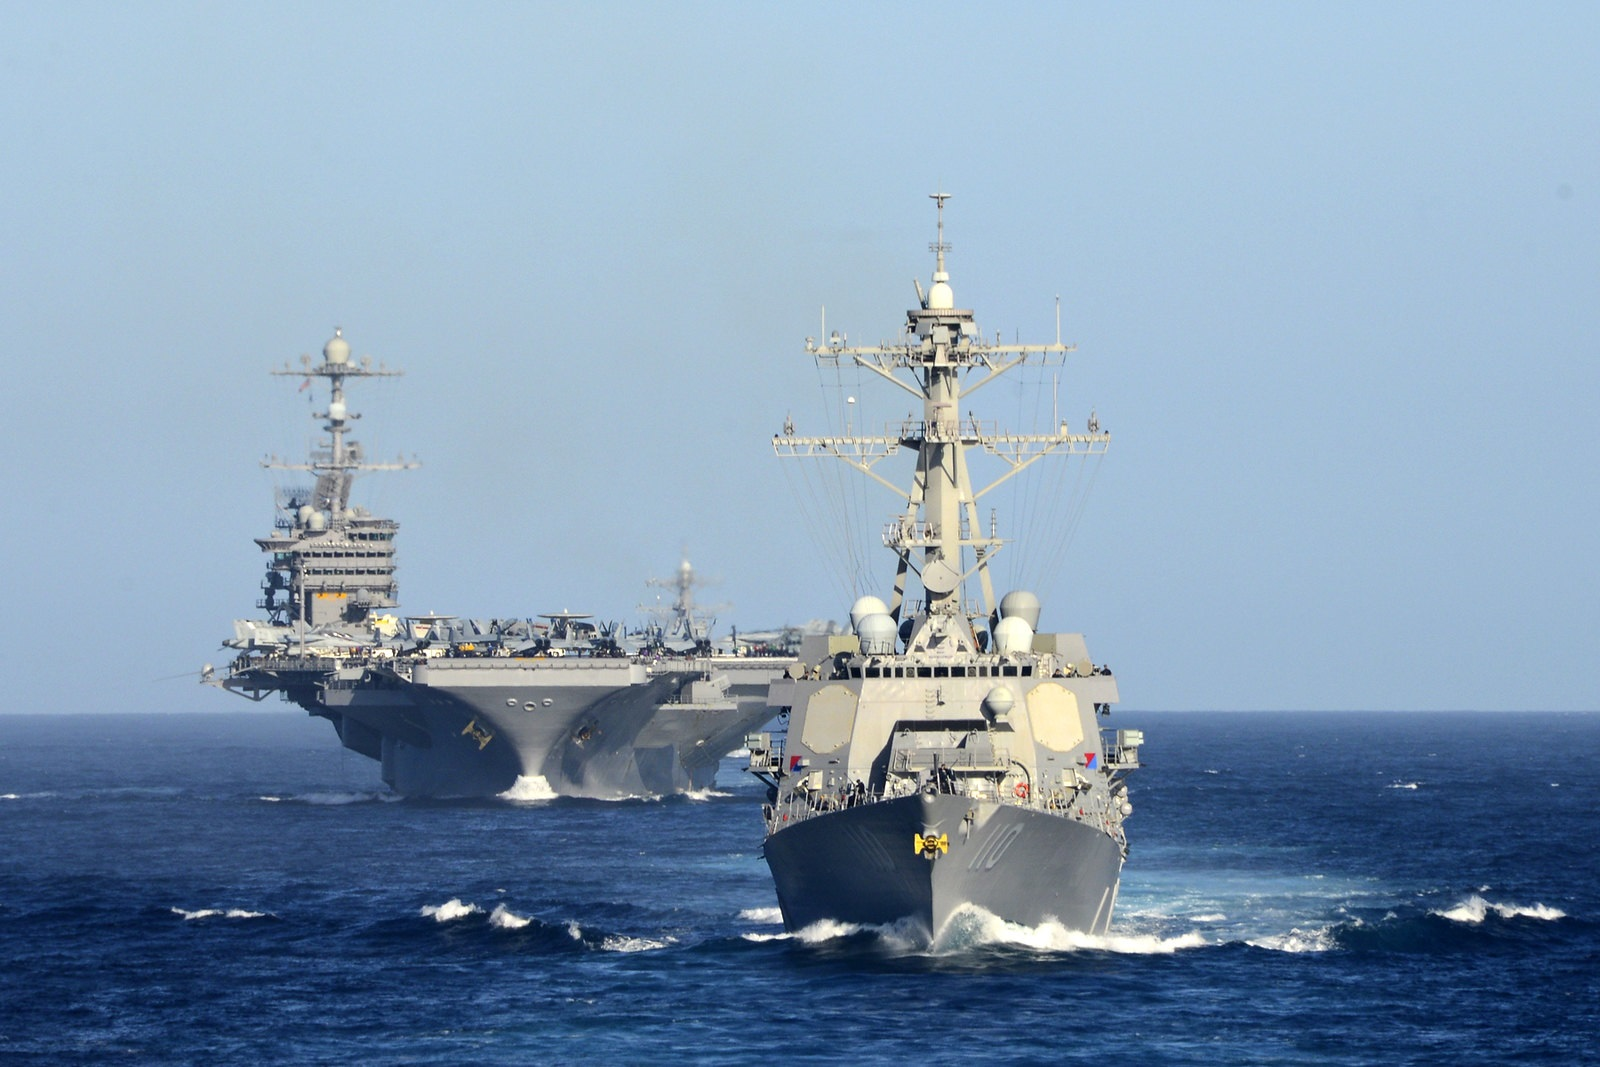 The U.S. Navy Is Developing Robot Warships for Fighting China